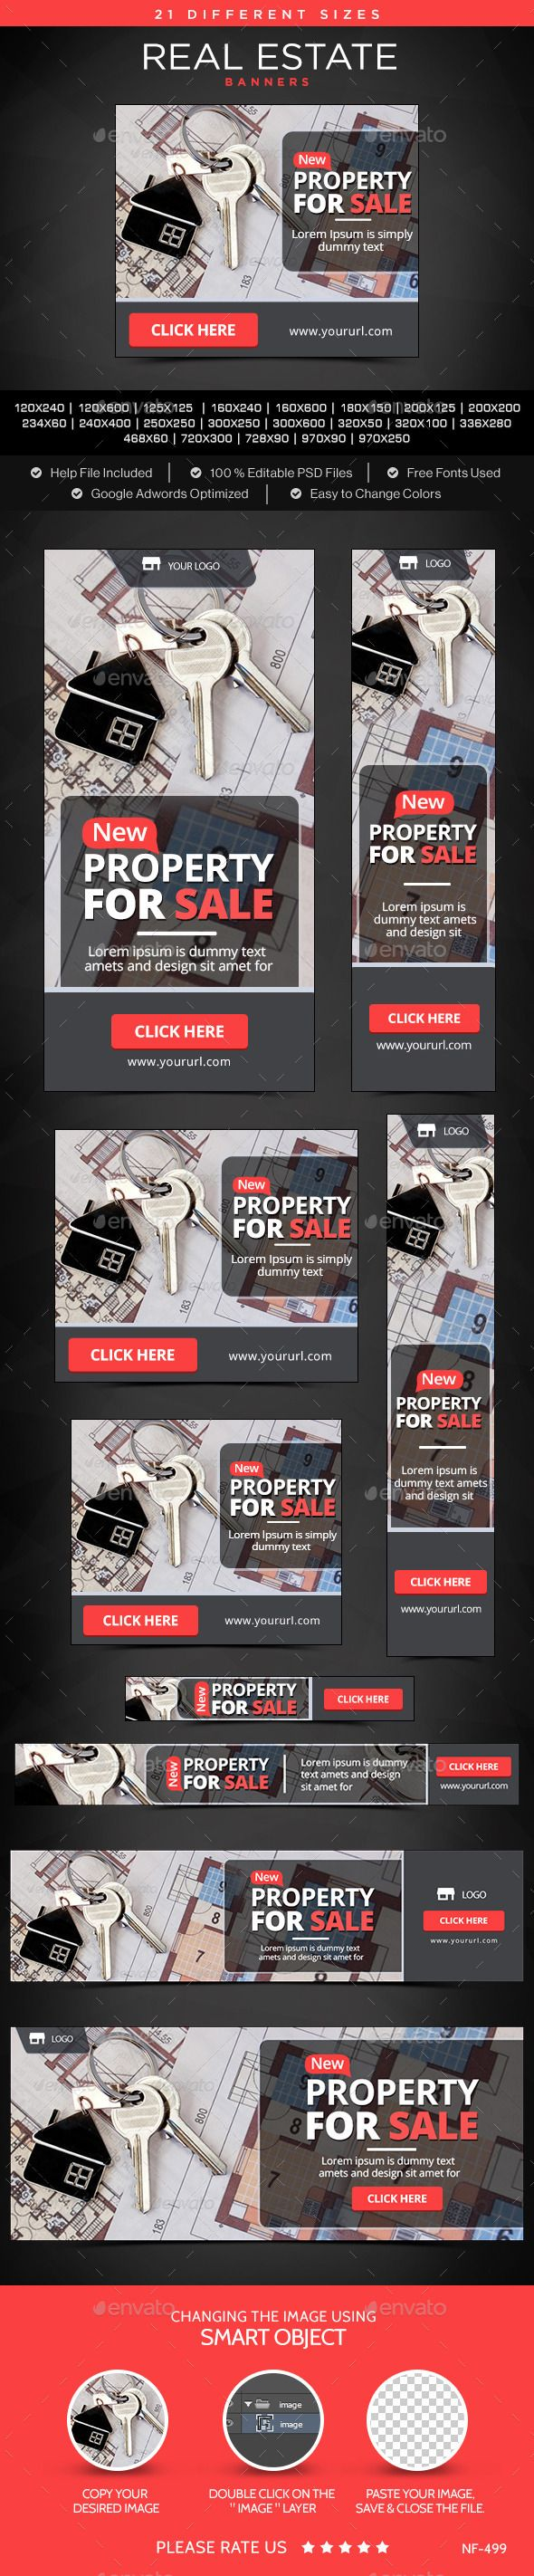 Real Estate Banners Template #design Download: http://graphicriver.net/item/real-estate-banners/12062136?ref=ksioks